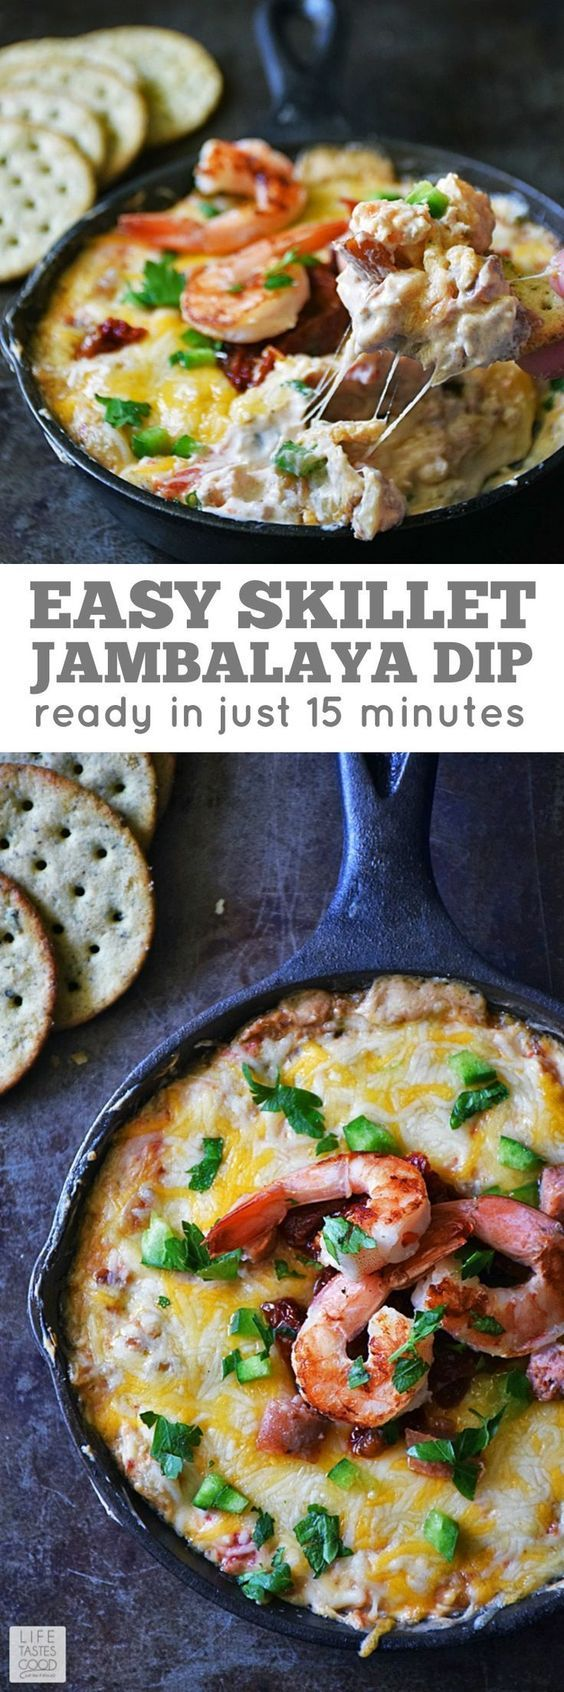 Skillet Jambalaya Dip | by Life Tastes Good is a twist on the classic Louisiana Creole Dish. Using many traditional ingredients, this recipe tastes just like Jambalaya, but is quicker and easier to make. It's also perfect for Mardi Gras, parties, game day, or just a fun snack! #LTGrecipes